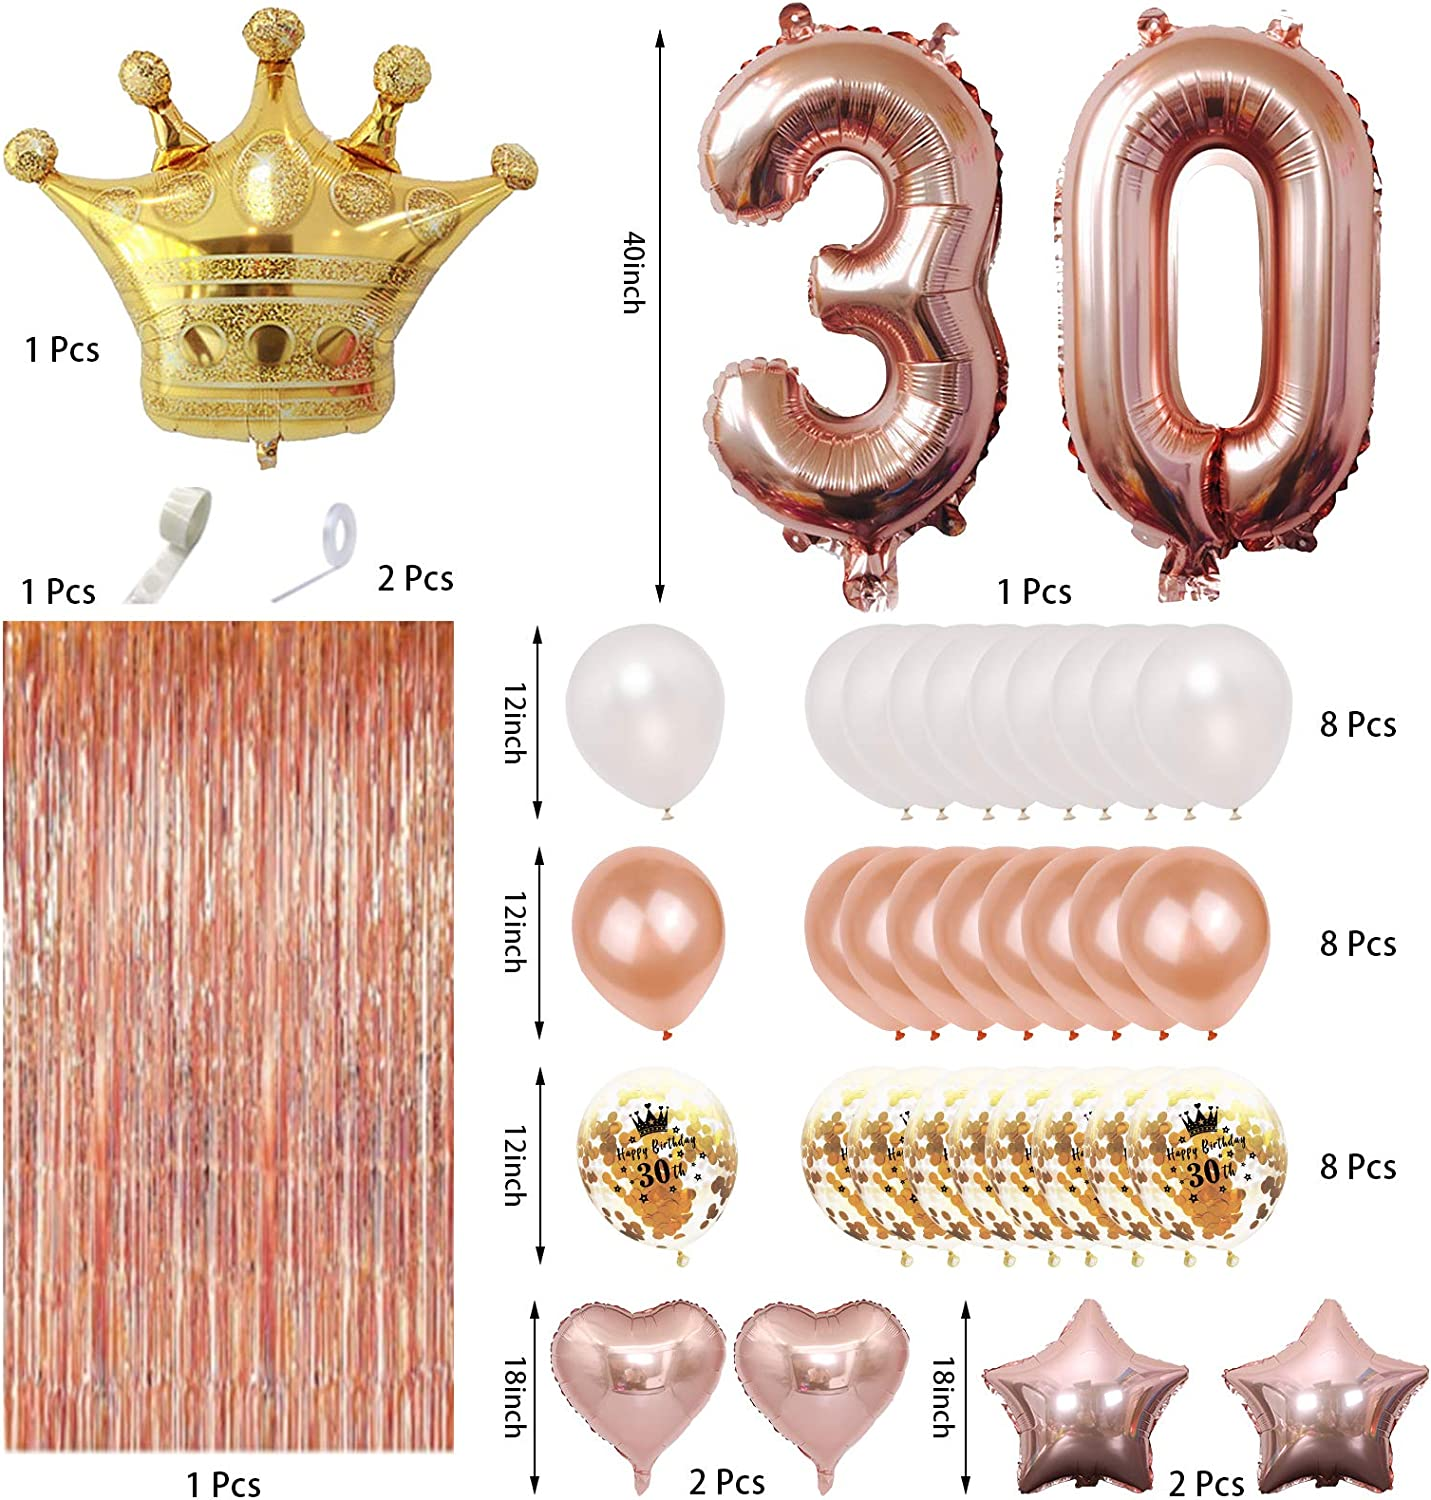 30th Birthday Decorations Rose Gold,30th Birthday Party Supplies Boy Girl 30th Balloons Numbers,Rose Gold Balloons Crown Hat,Rose Gold Foil Fringe Curtain Hanging Swirls